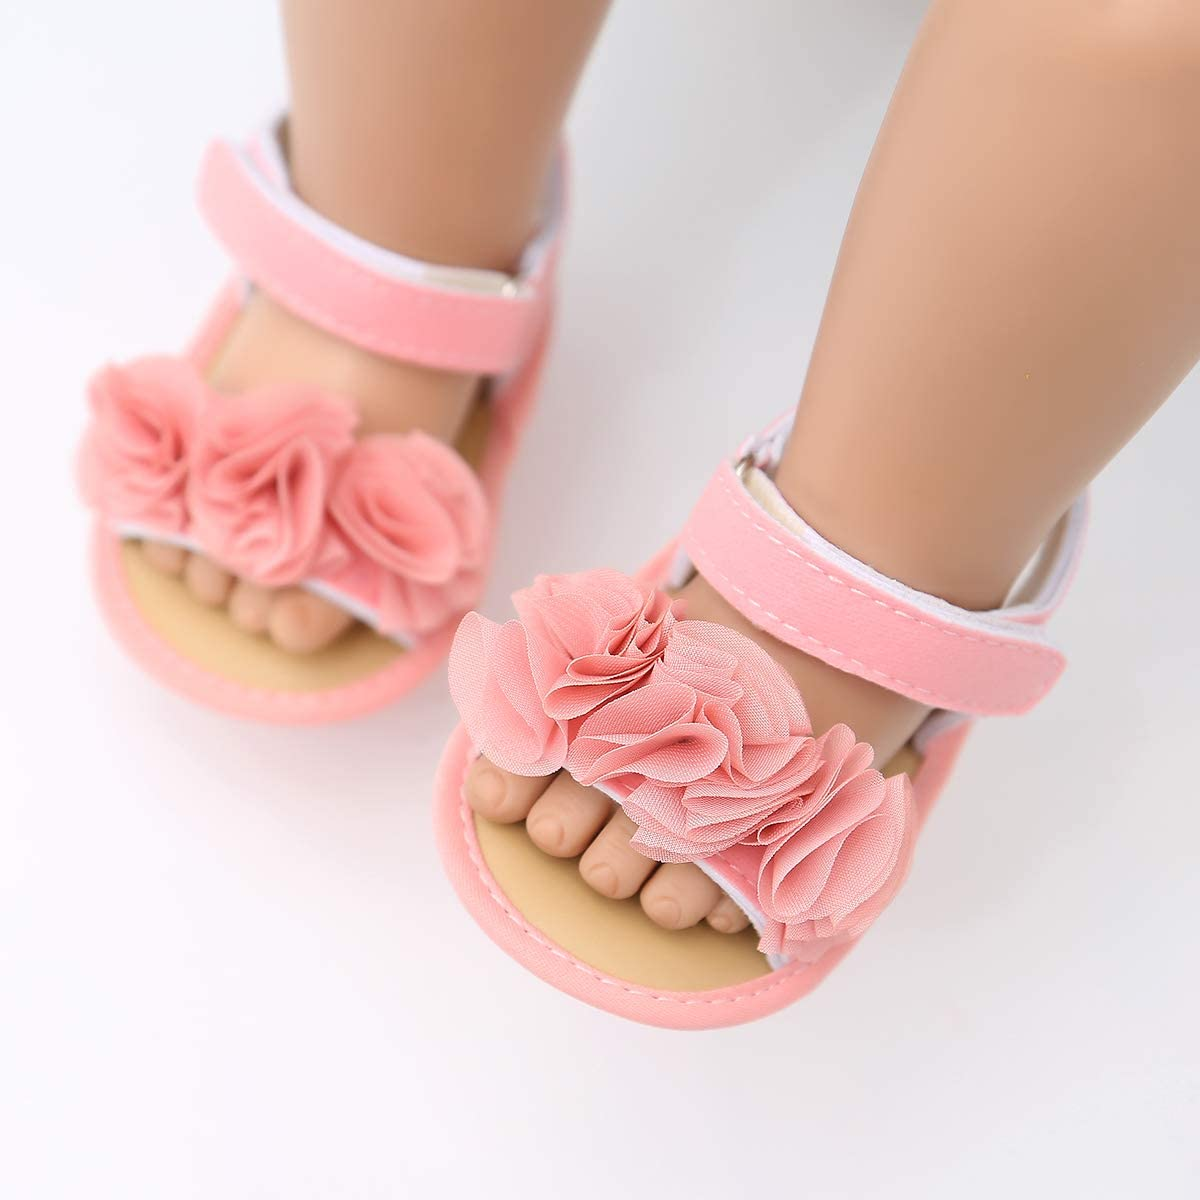 Baby Girls Summer Sandals Non-Slip Soft Sole Infant Slippers Floral Princess Dress Toddler First Walkers Shoes